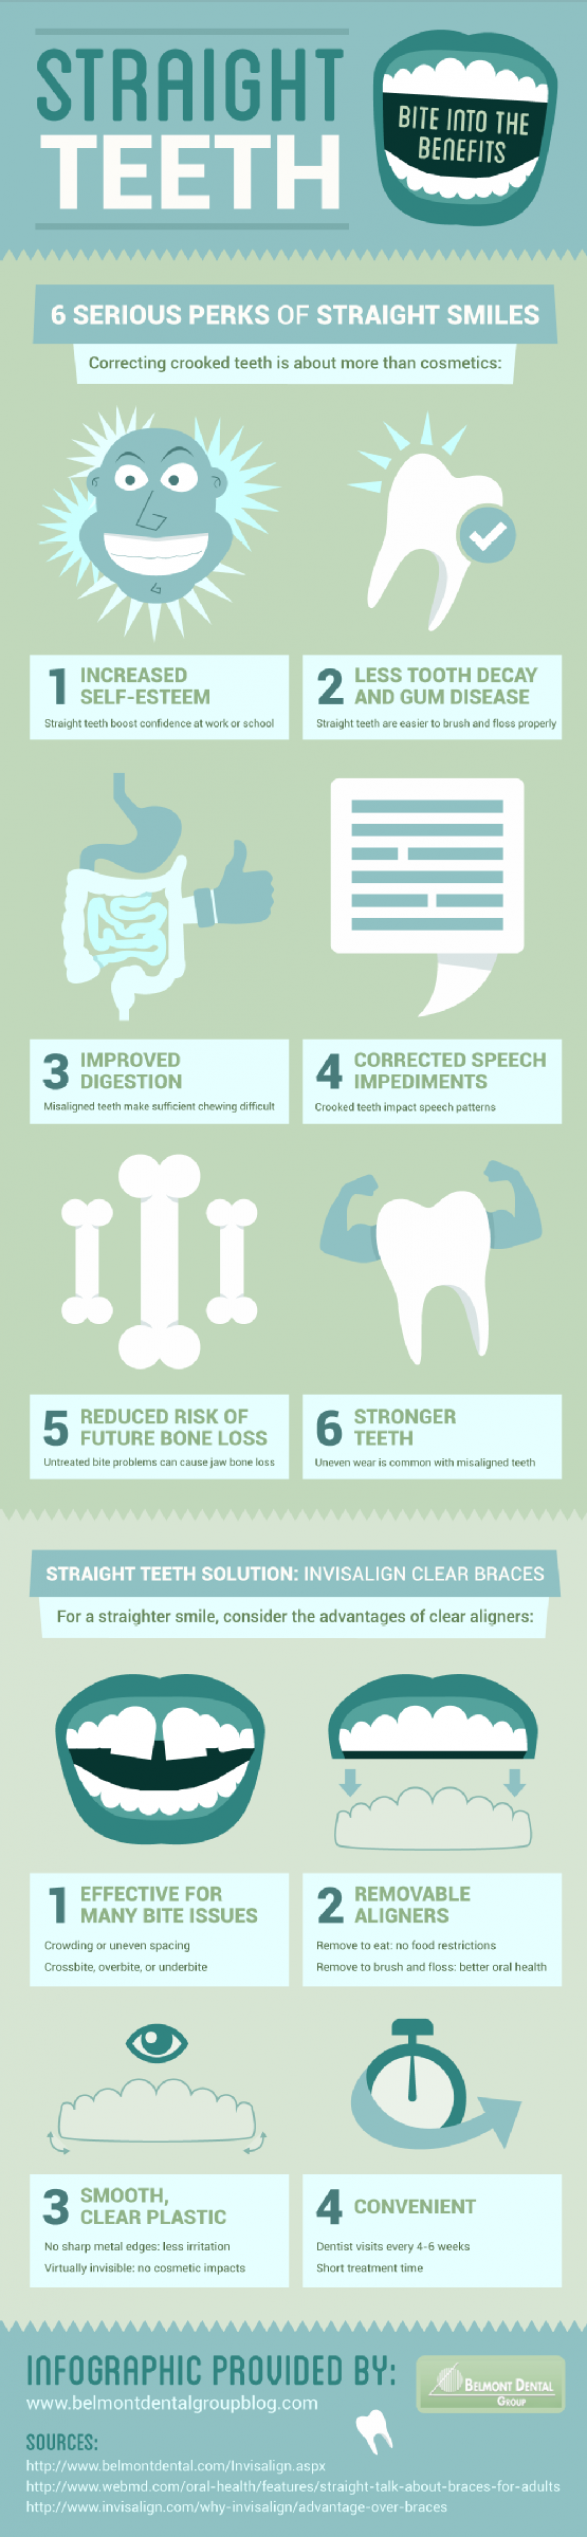 Straight Teeth: Bite into the Benefits